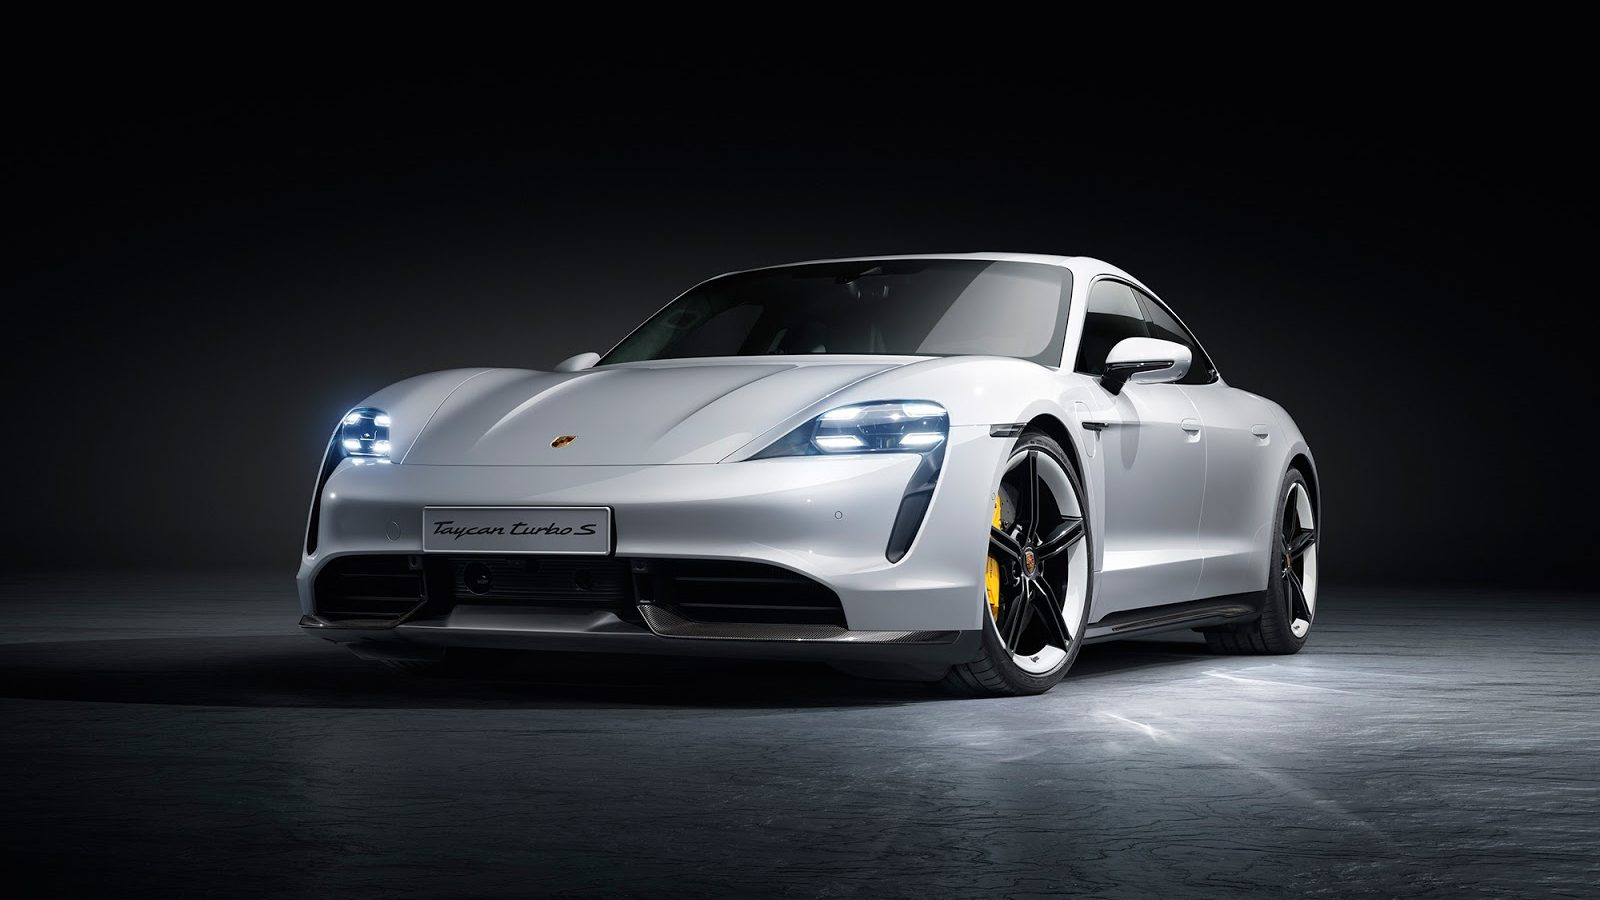 bgr.com - Sponsored Post - From futuristic design details to game-changing power, the all-electric Porsche Taycan has - and does - it all